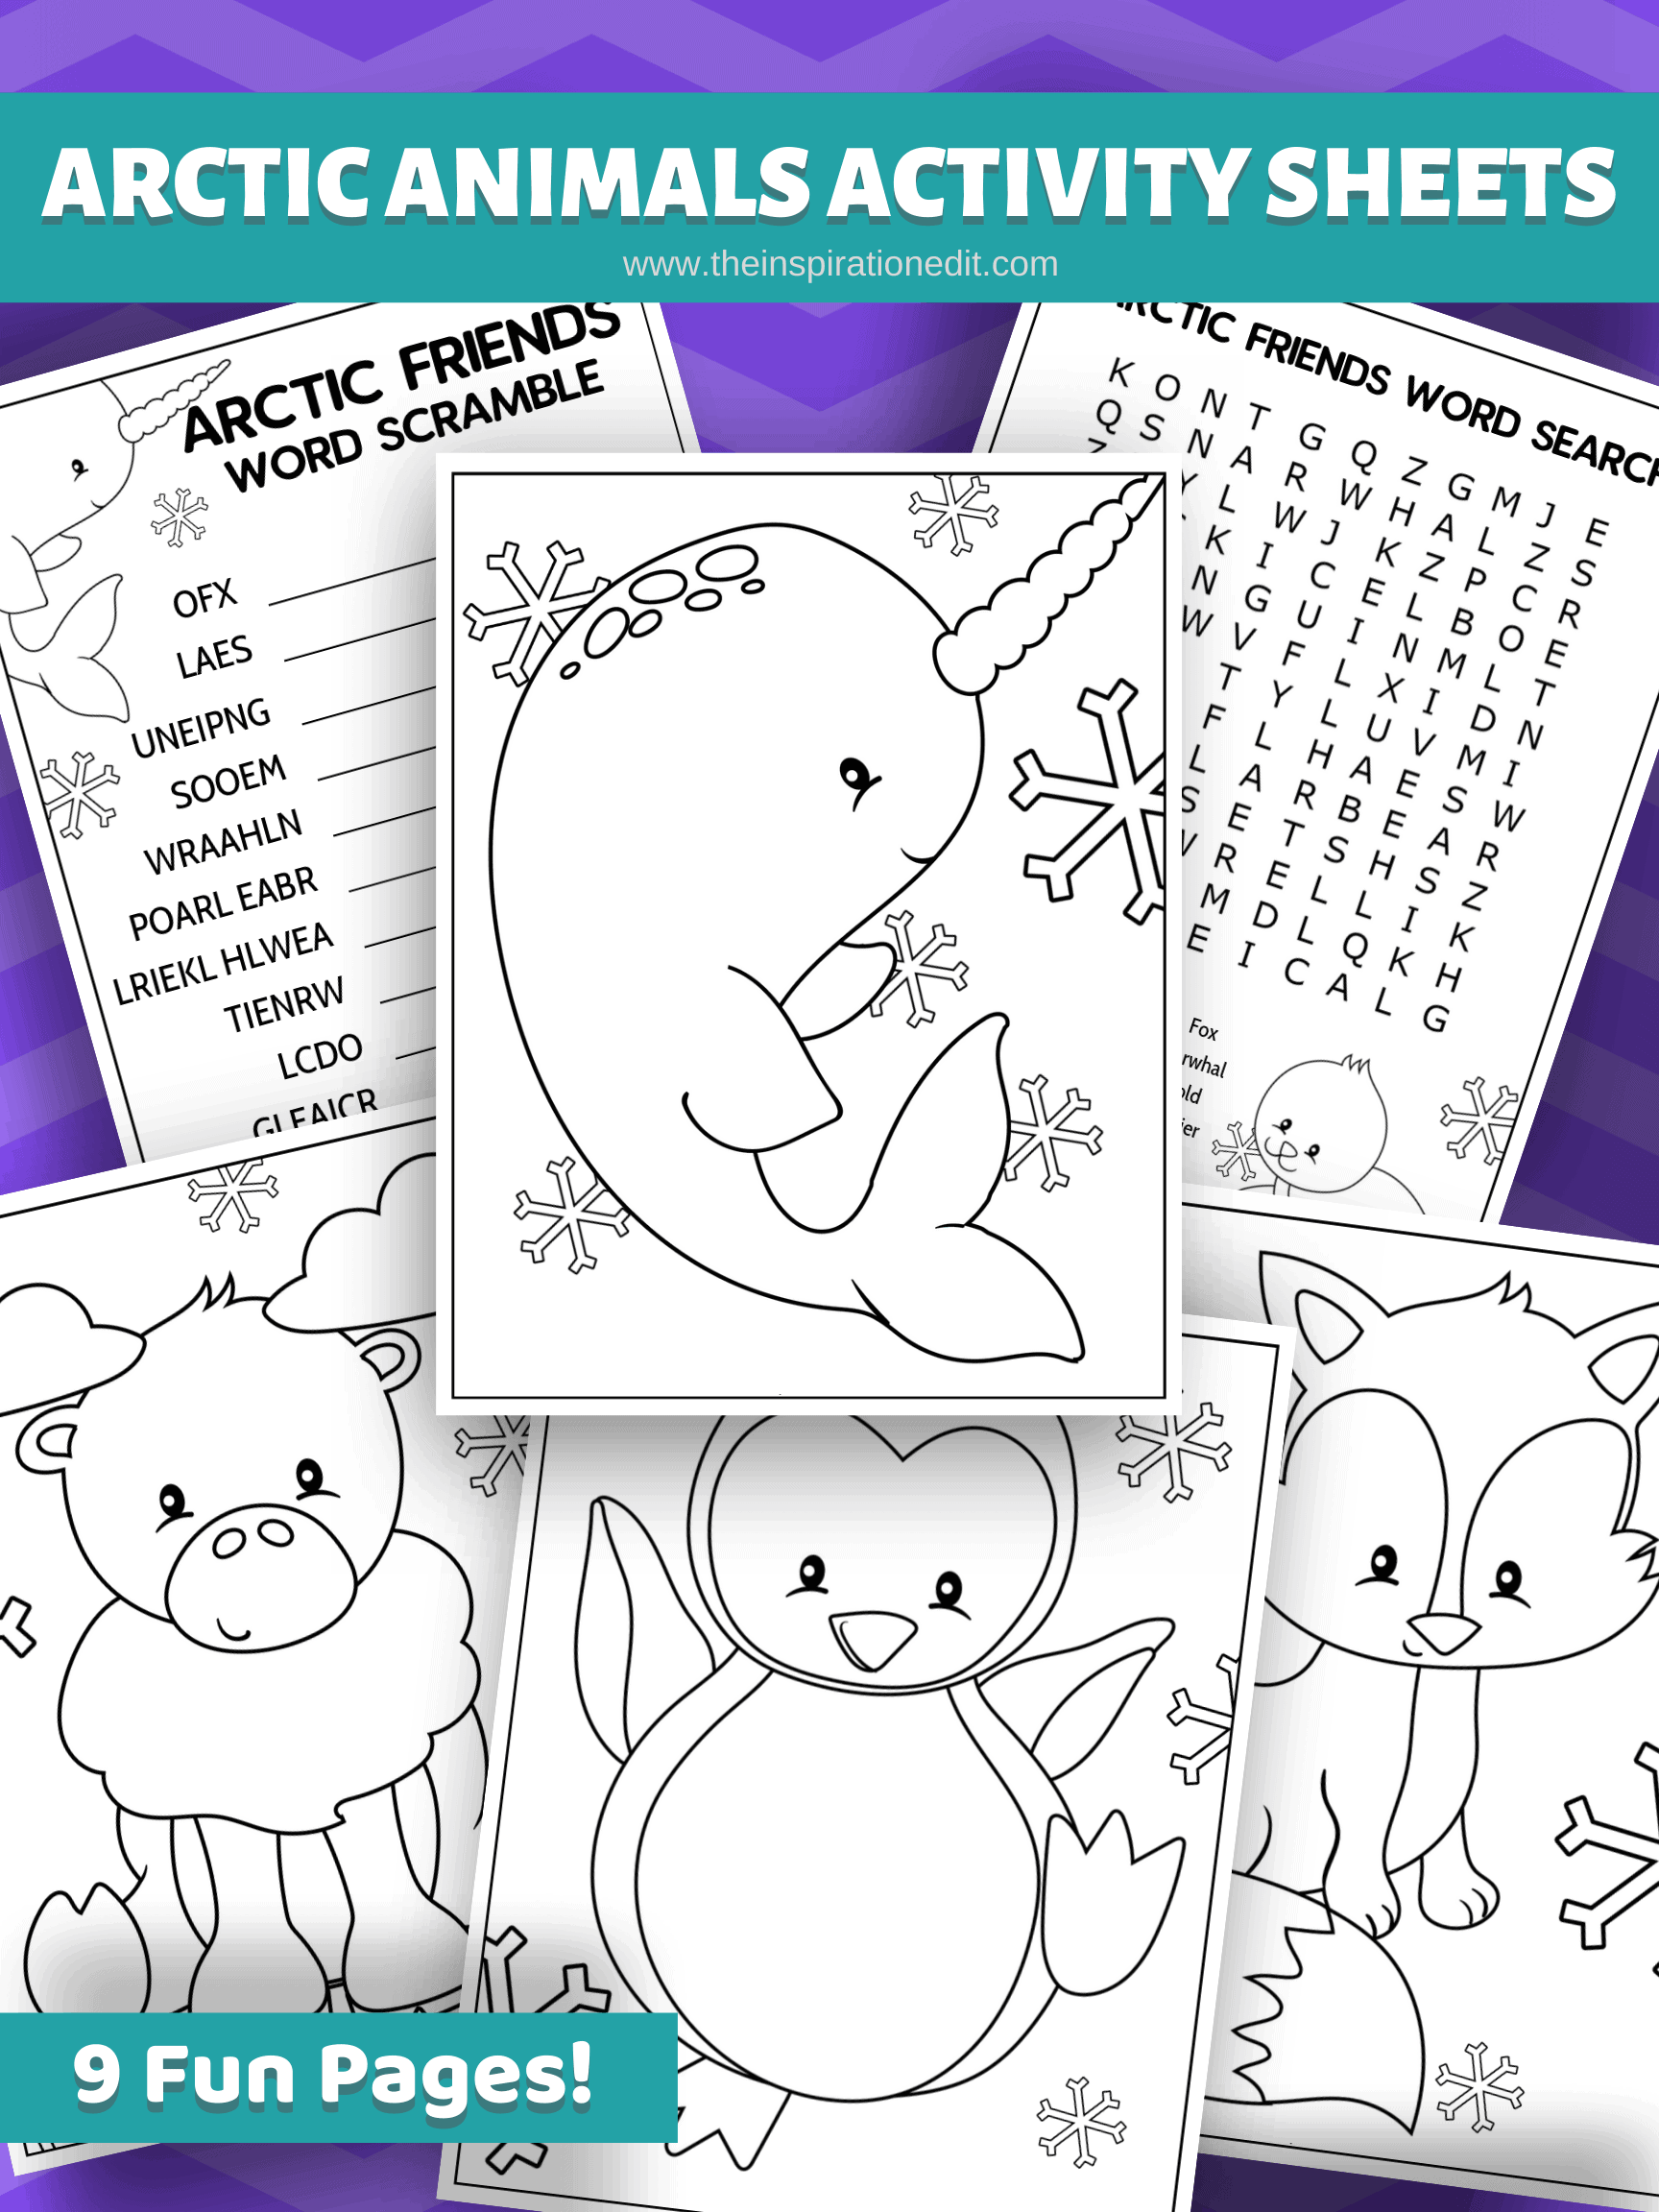 Artic friends activity sheets for kids